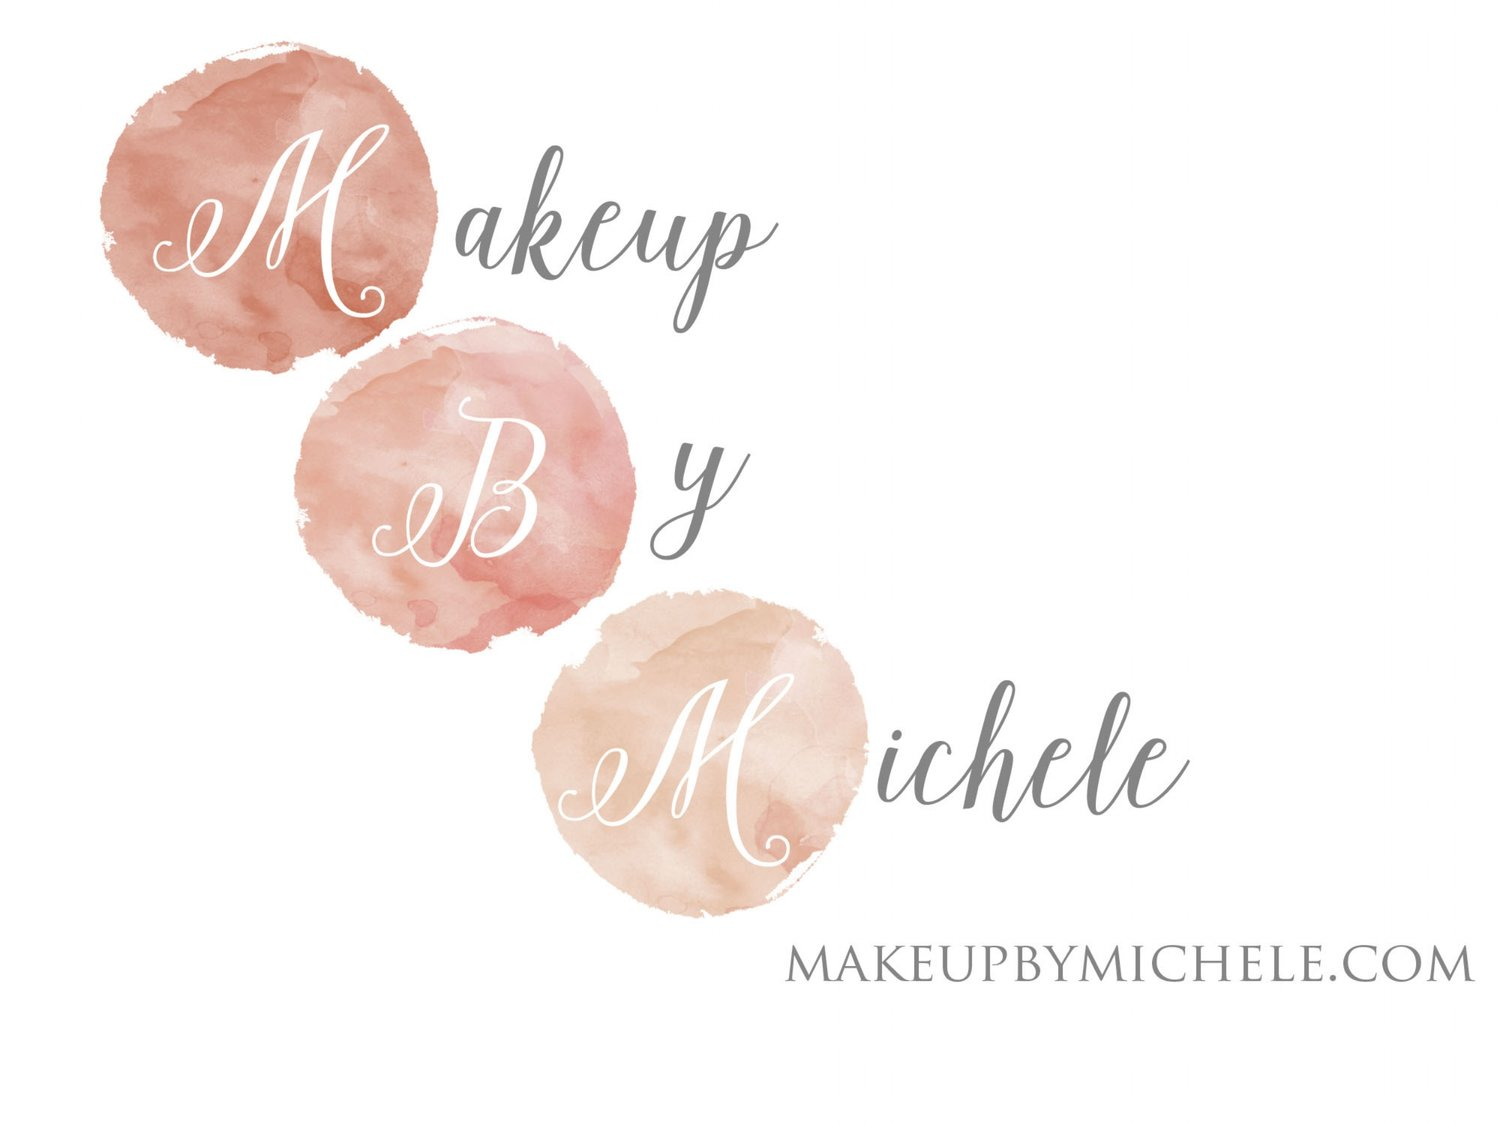 Makeup by Michele